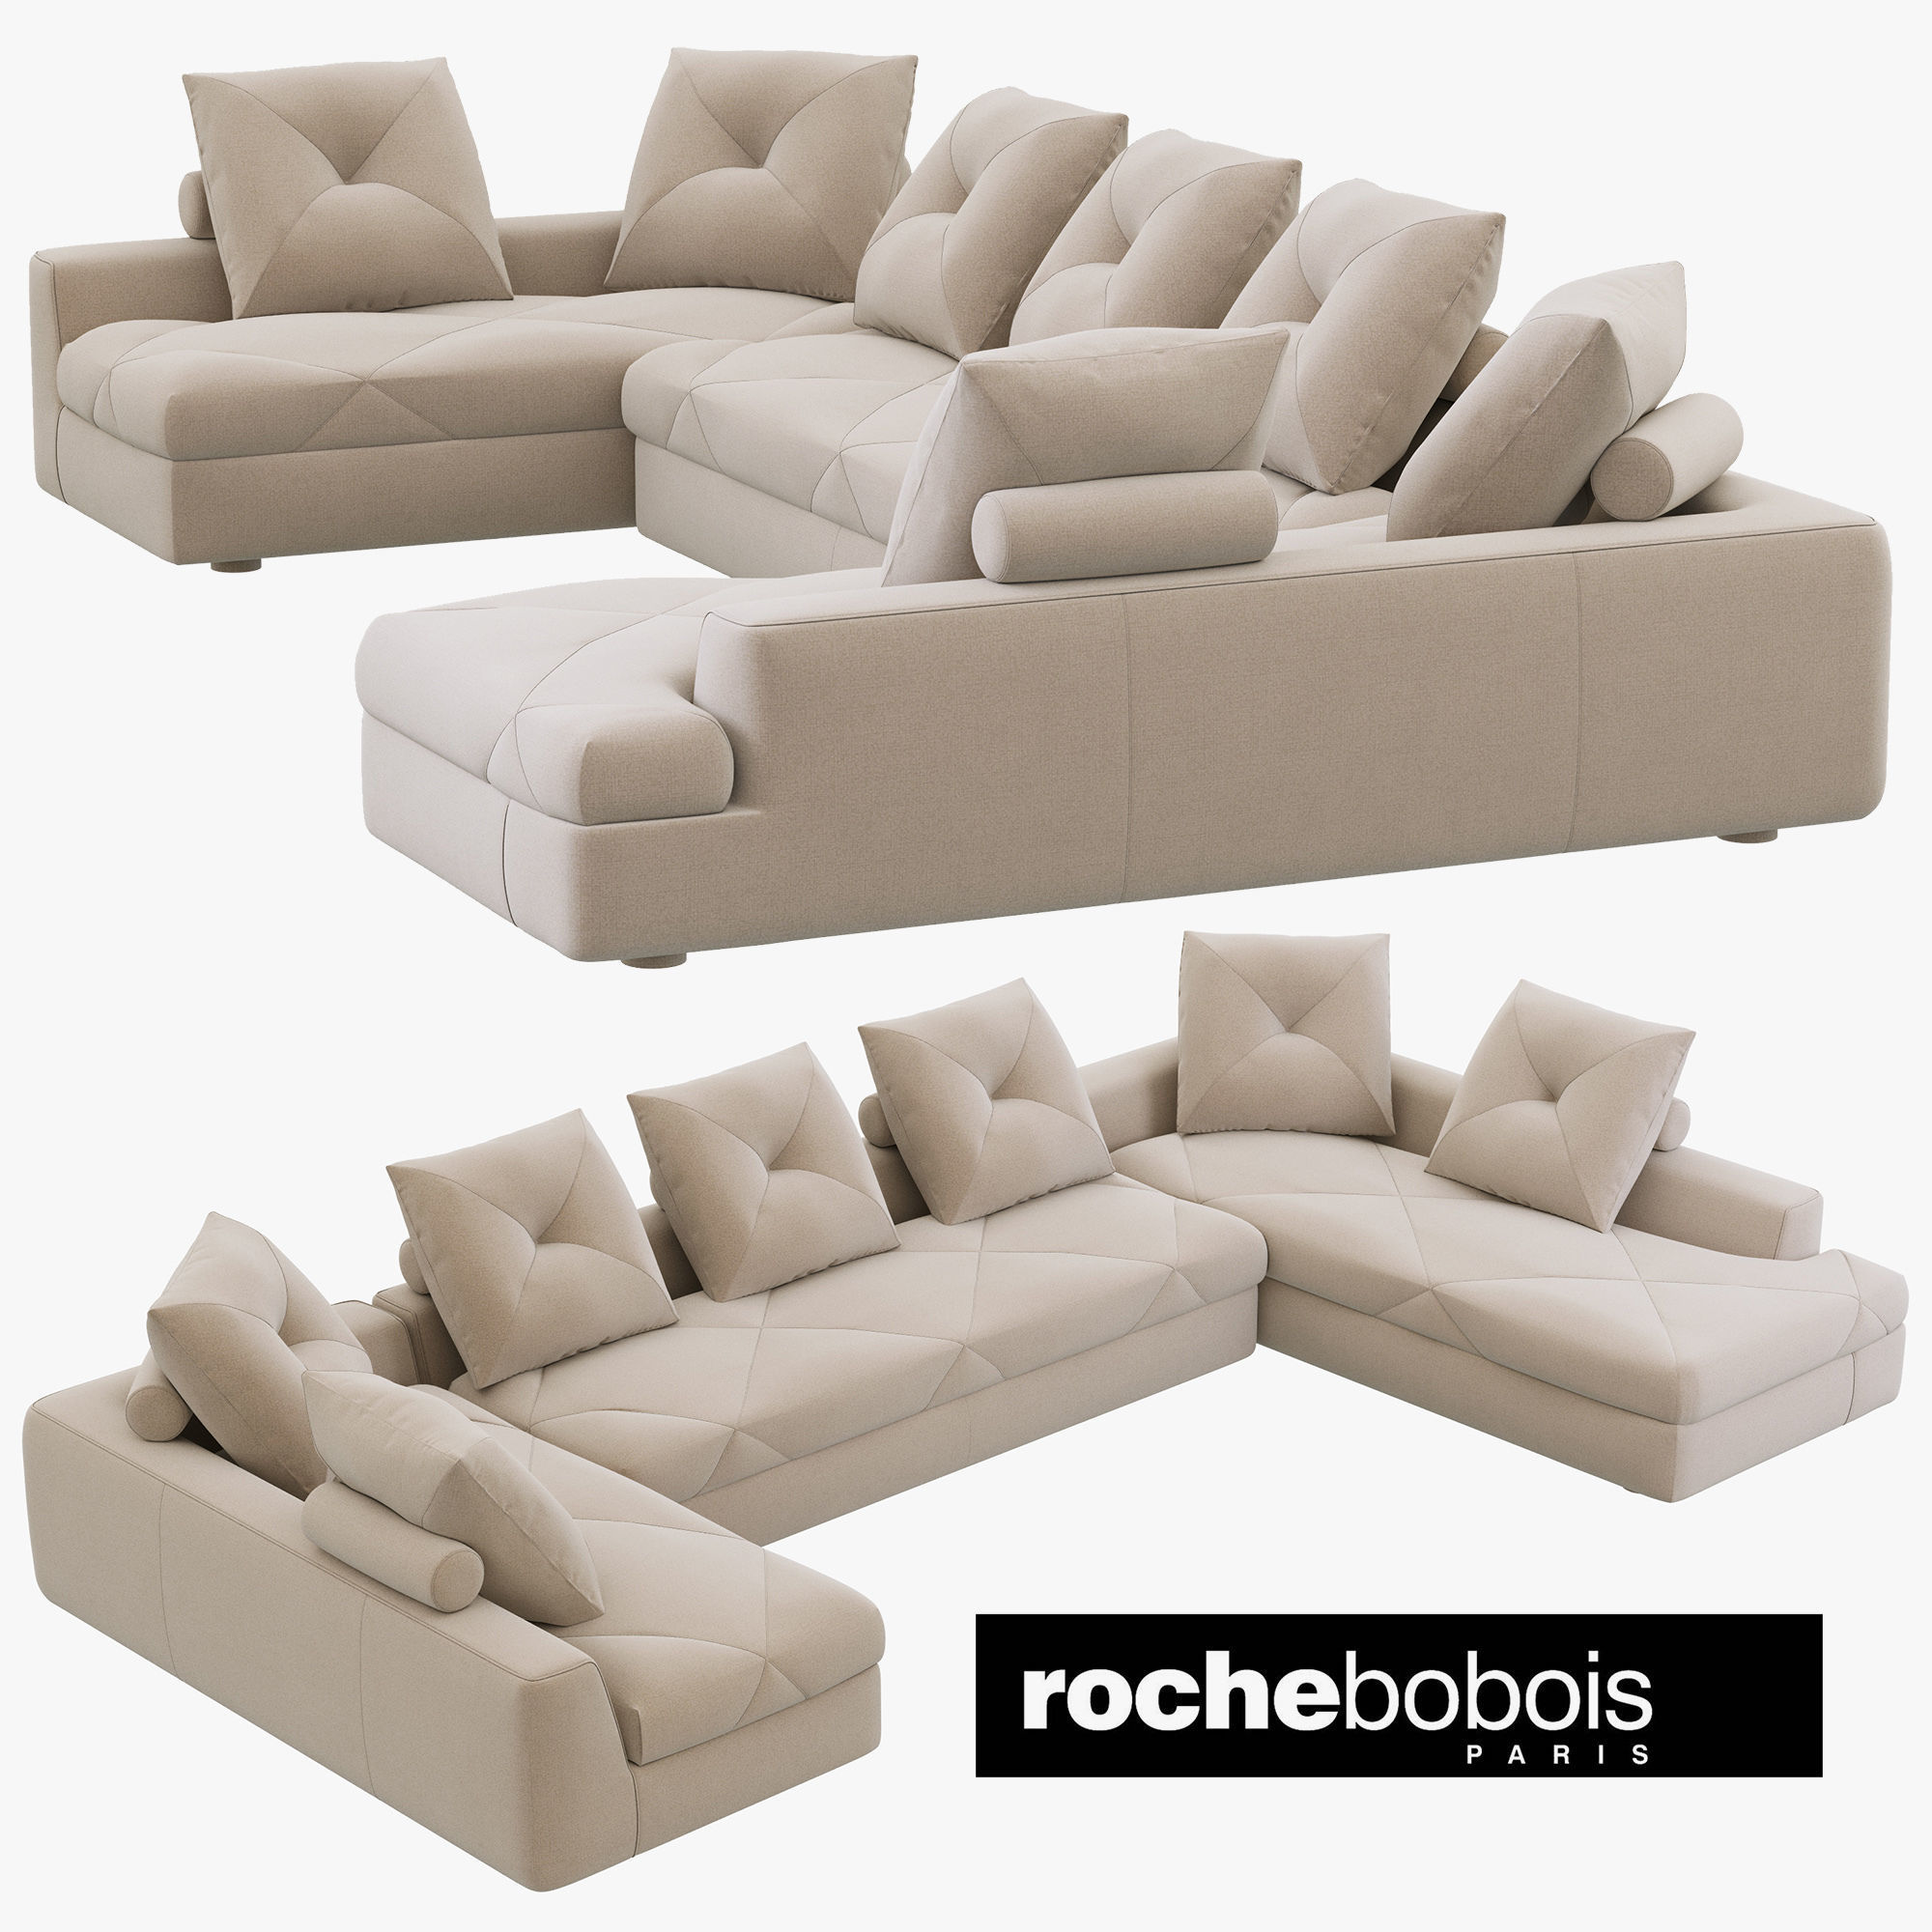 Living Roche Bobois. Roche Bobois Rugs Living Room Modern With ...